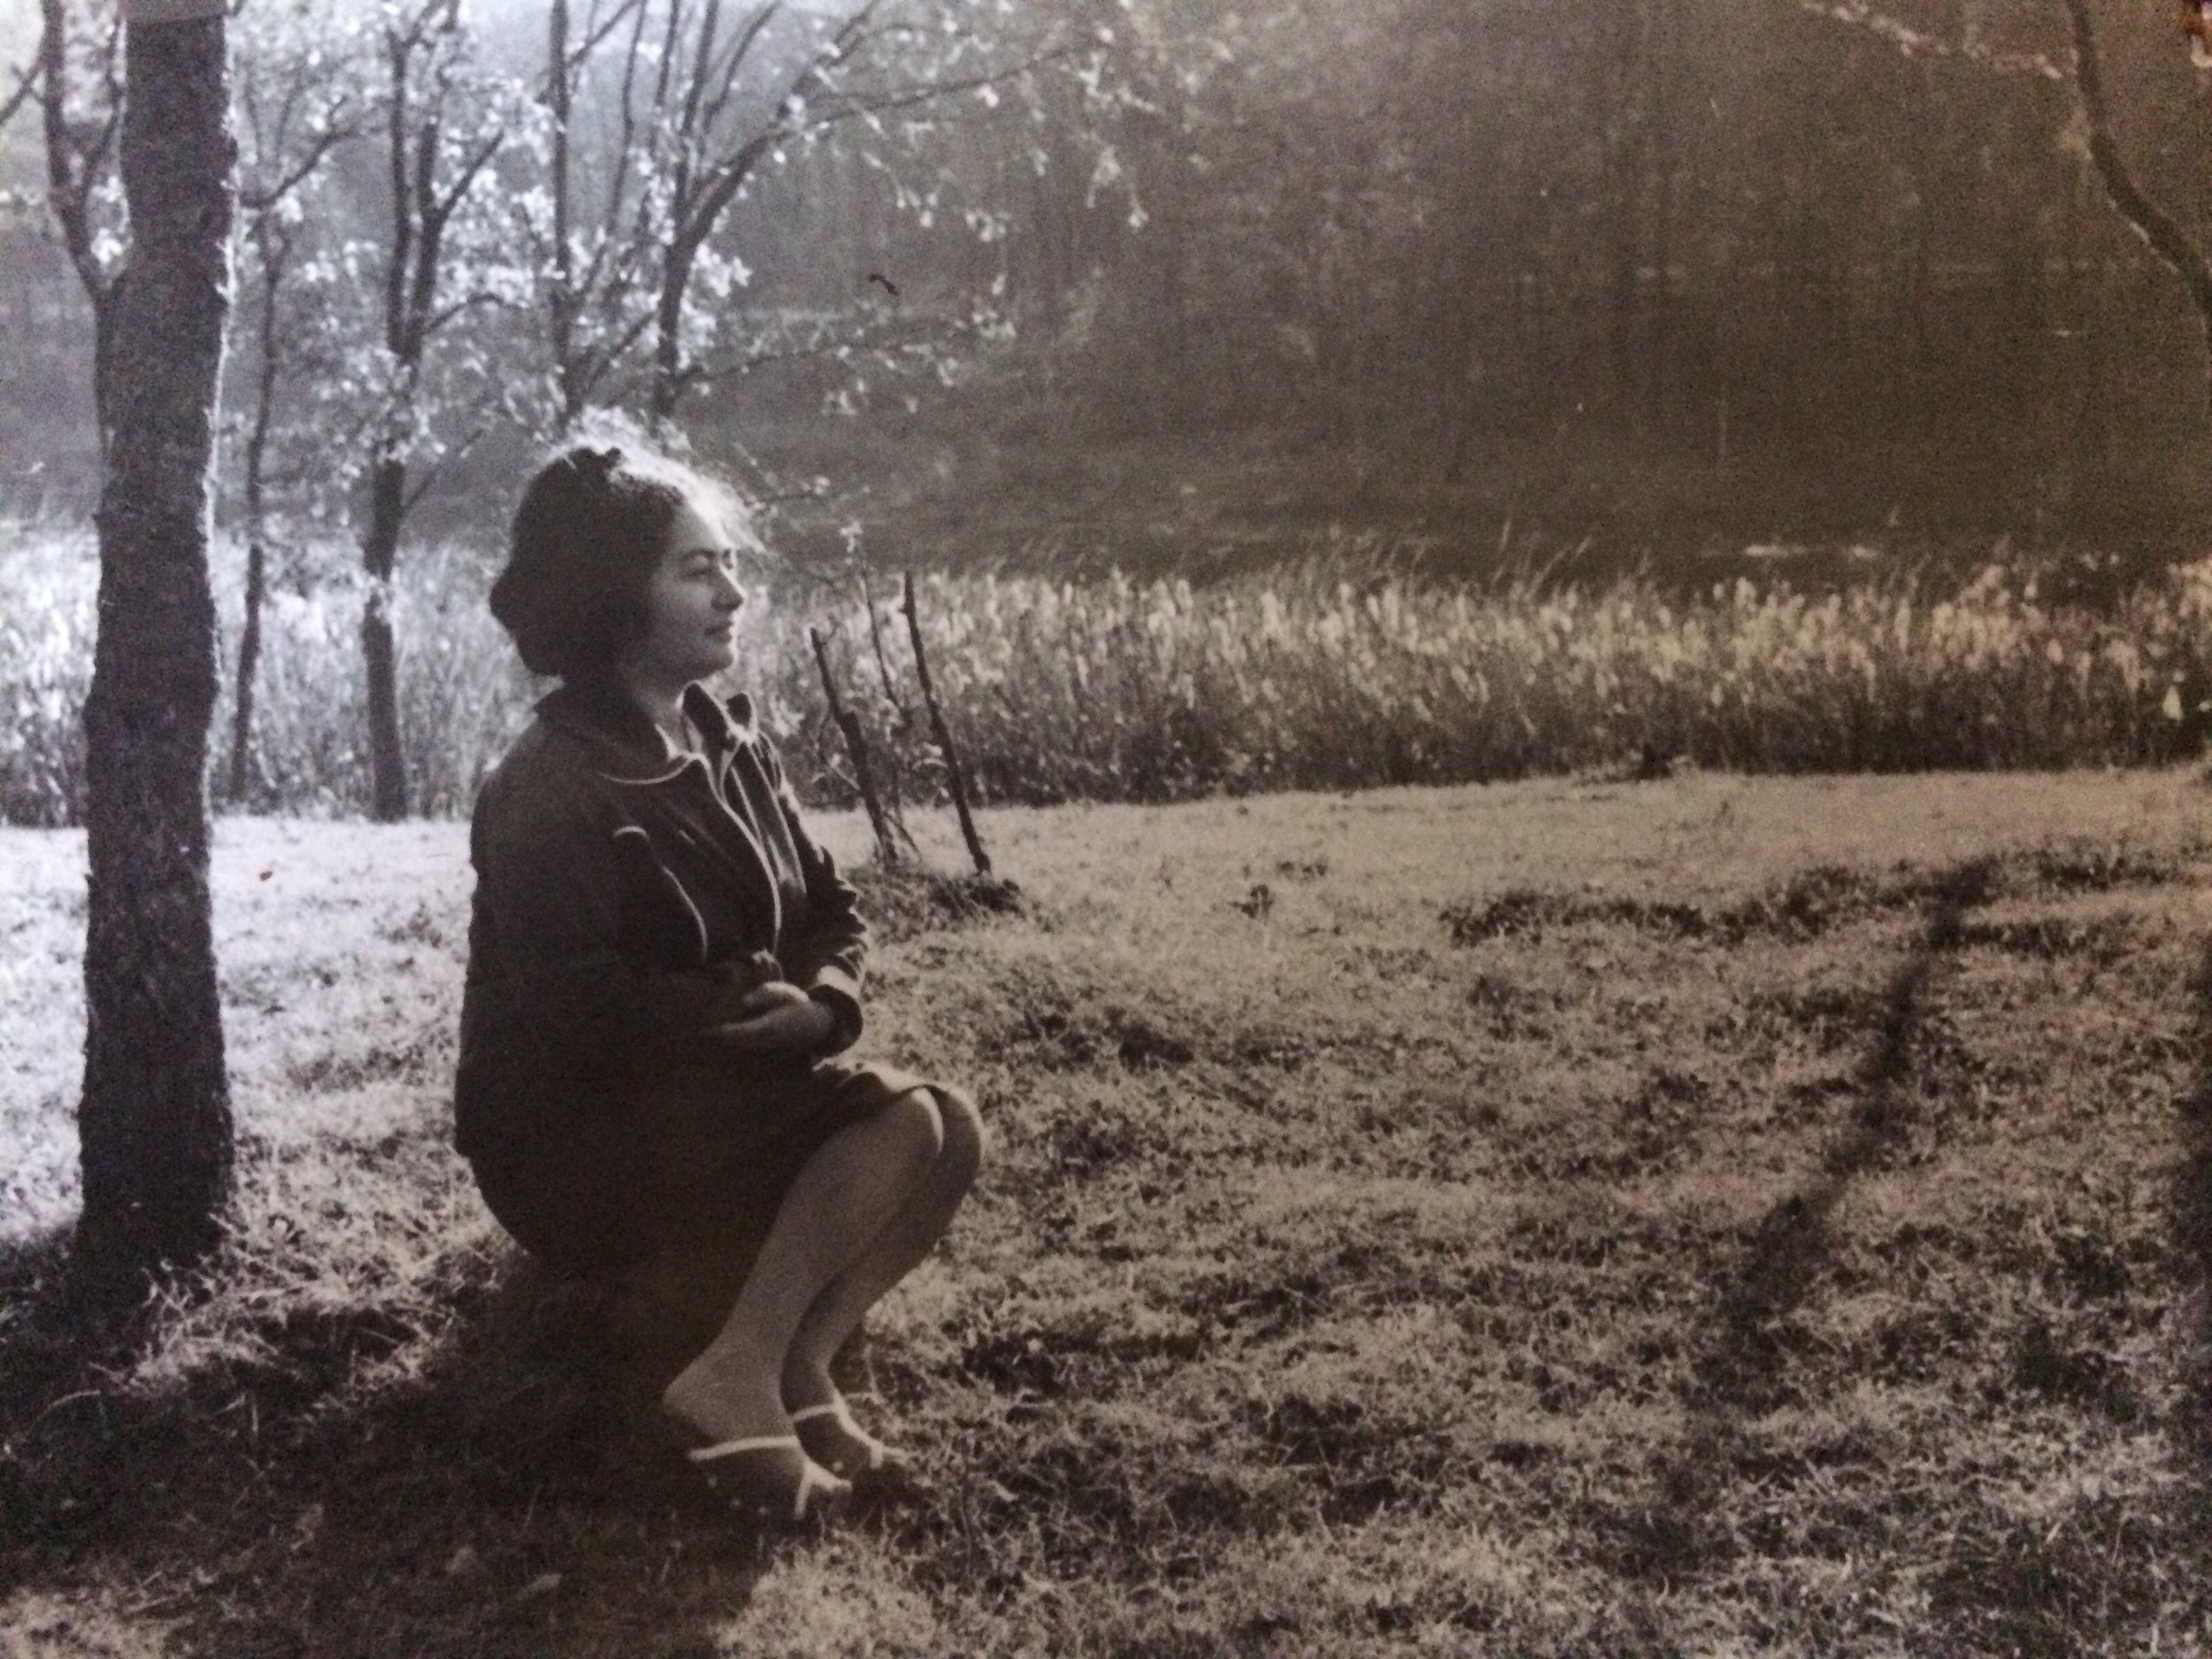 This picture of my grandma was taken by my talented grandfather. I love the light he captured. She looks like a Queen- -So beautiful, so proud, so loved and adored. He had a true passion for photography and used to develop most of our family pictures in a makeshift darkroom in the bathroom. He gave me my first camera, a Smena 8M, and thought me how to use it.